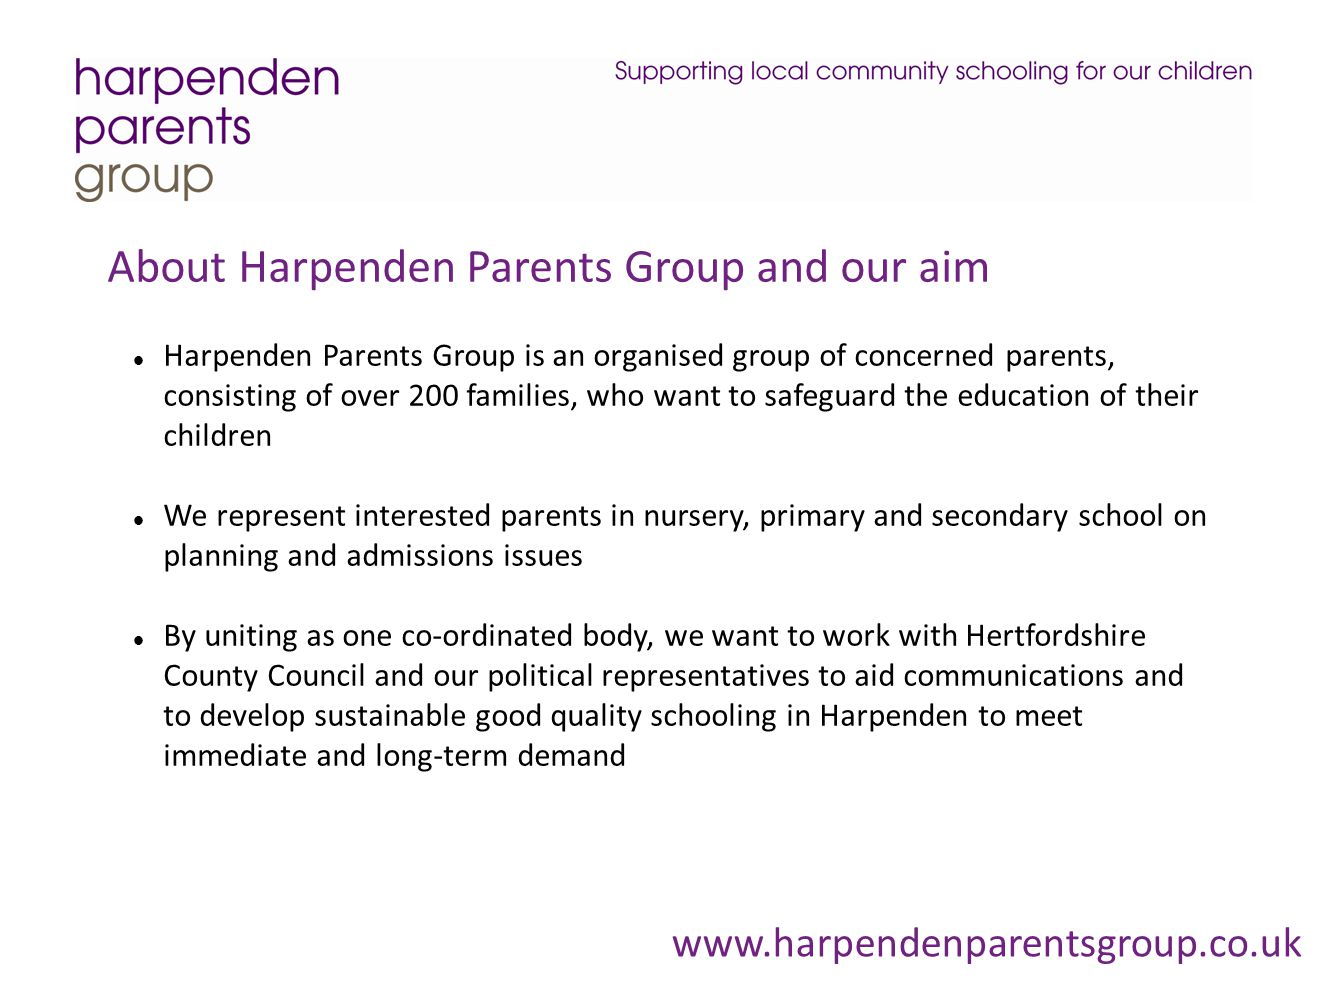 www.harpendenparentsgroup.co.uk About Harpenden Parents Group and our aim Harpenden Parents Group is an organised group of concerned parents, consisti